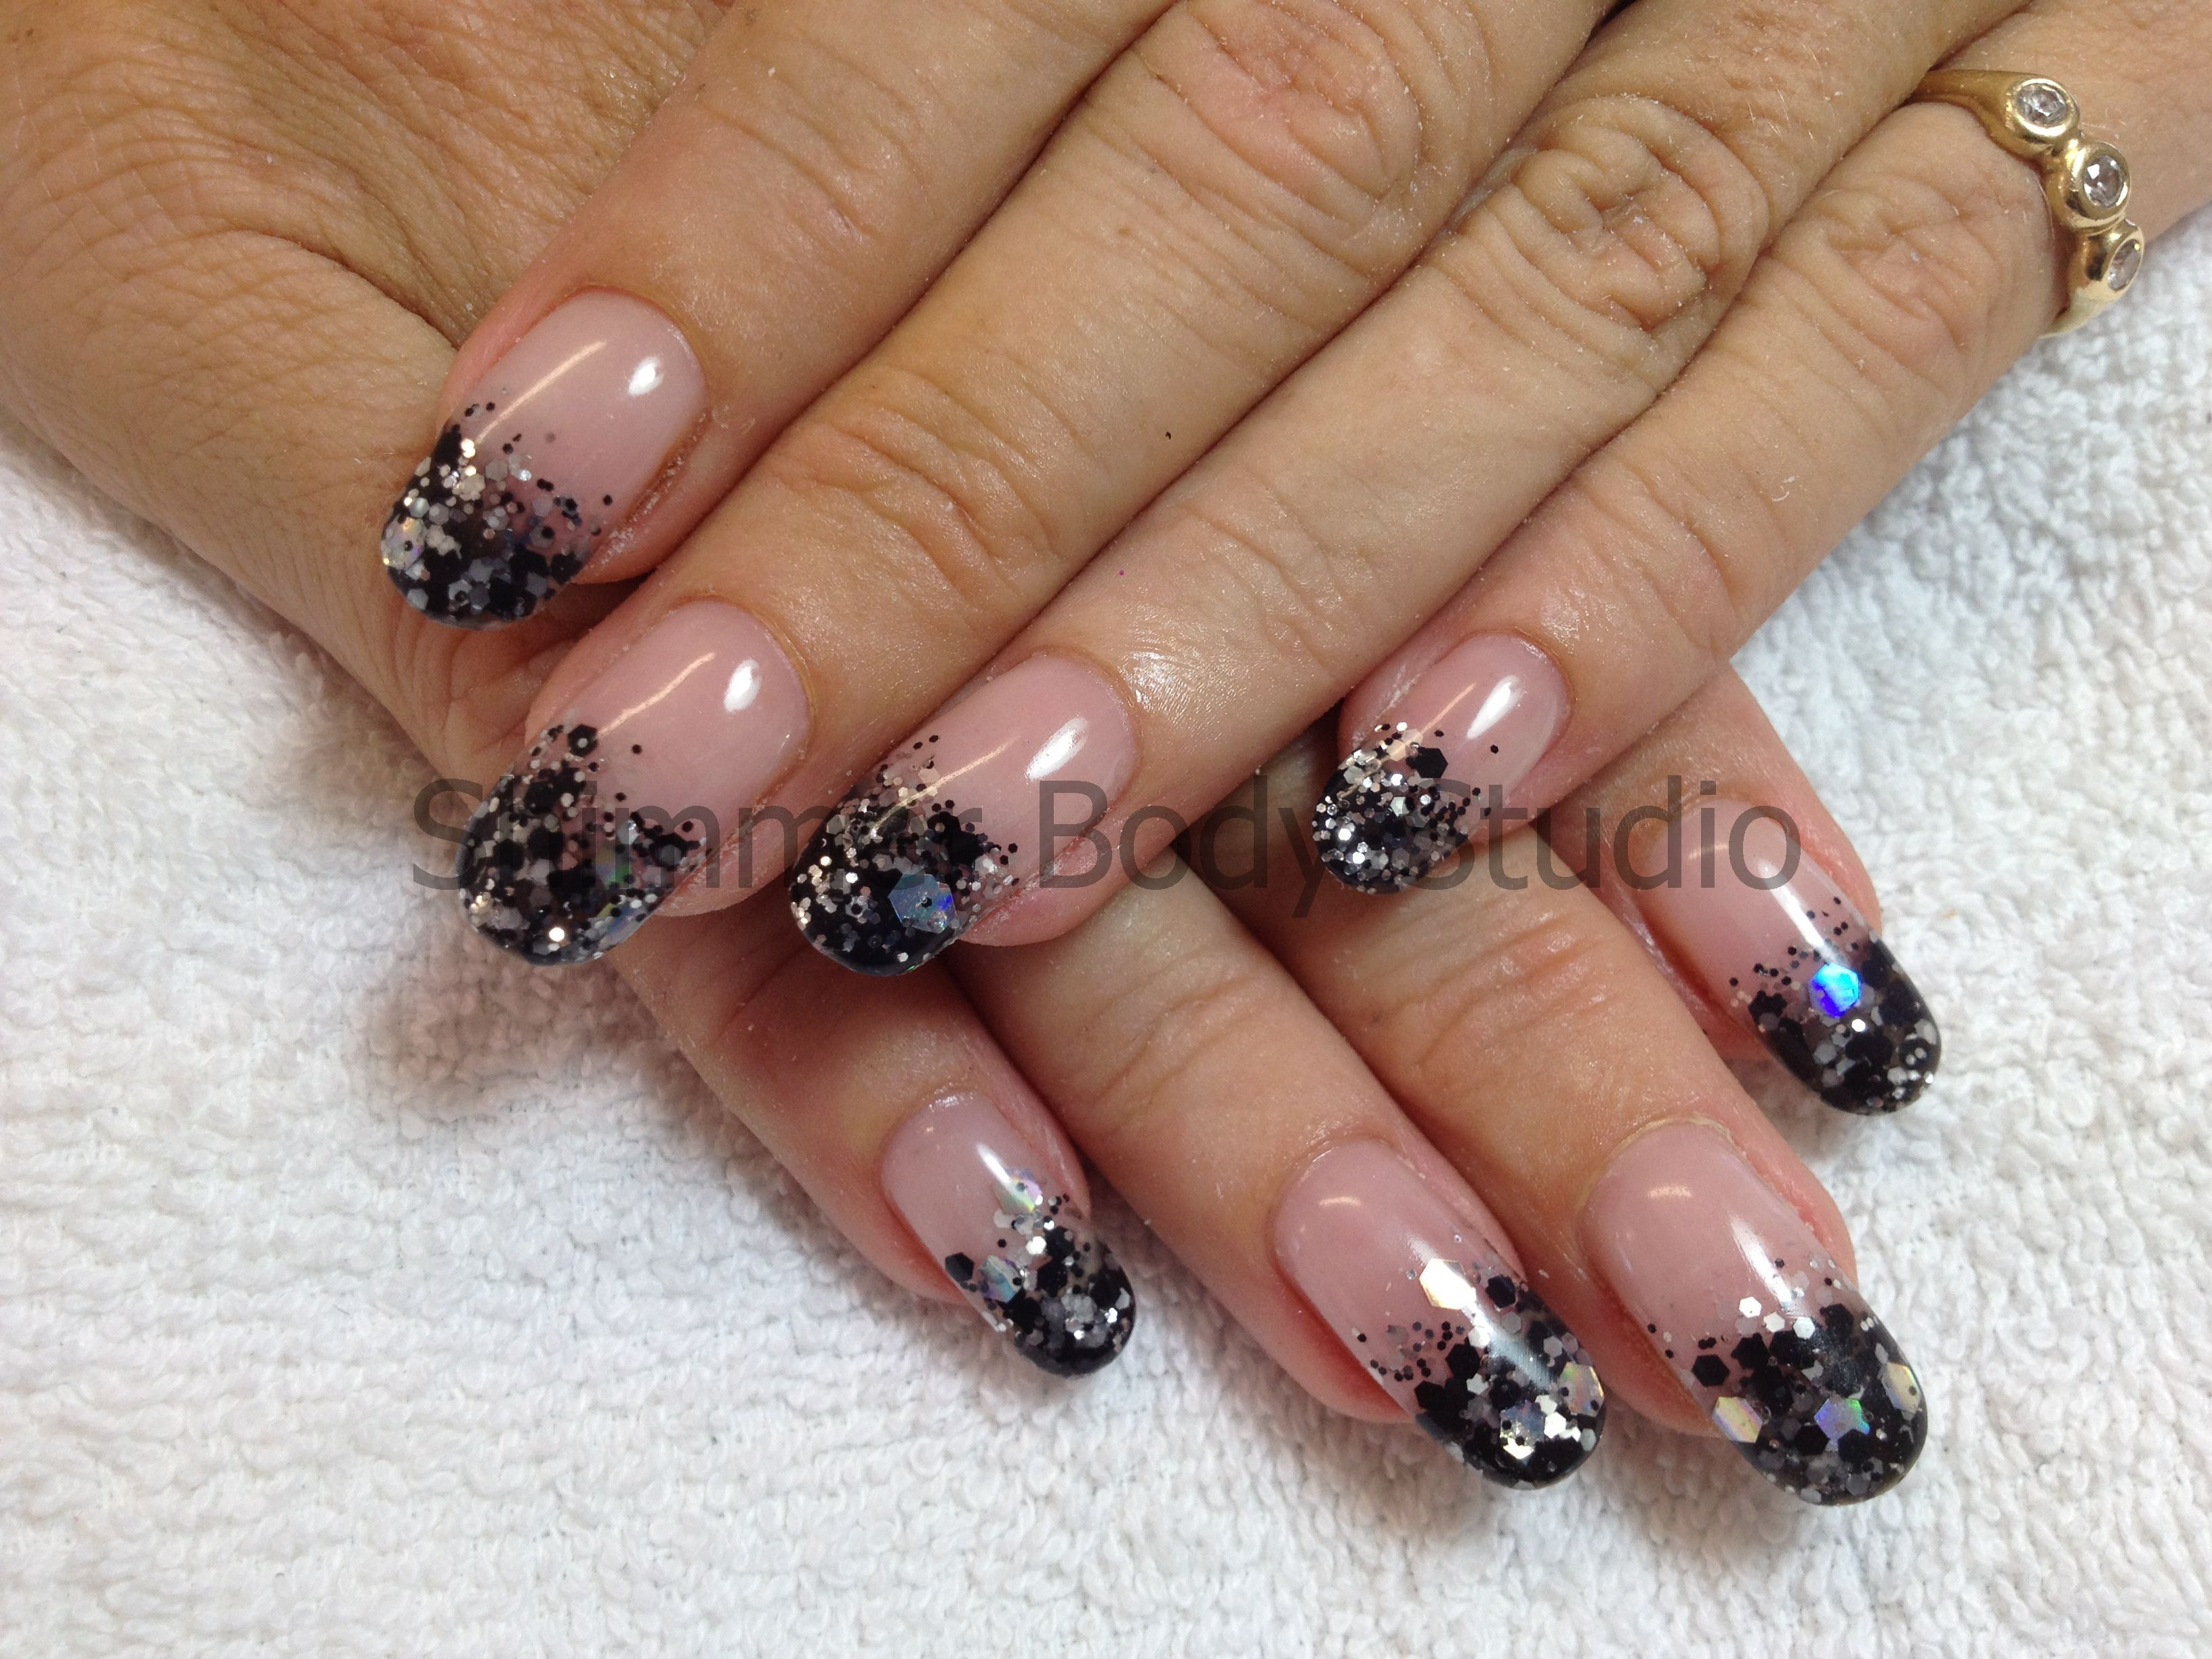 Gel nails, rounded nails black silver and white glitter, glitter ...